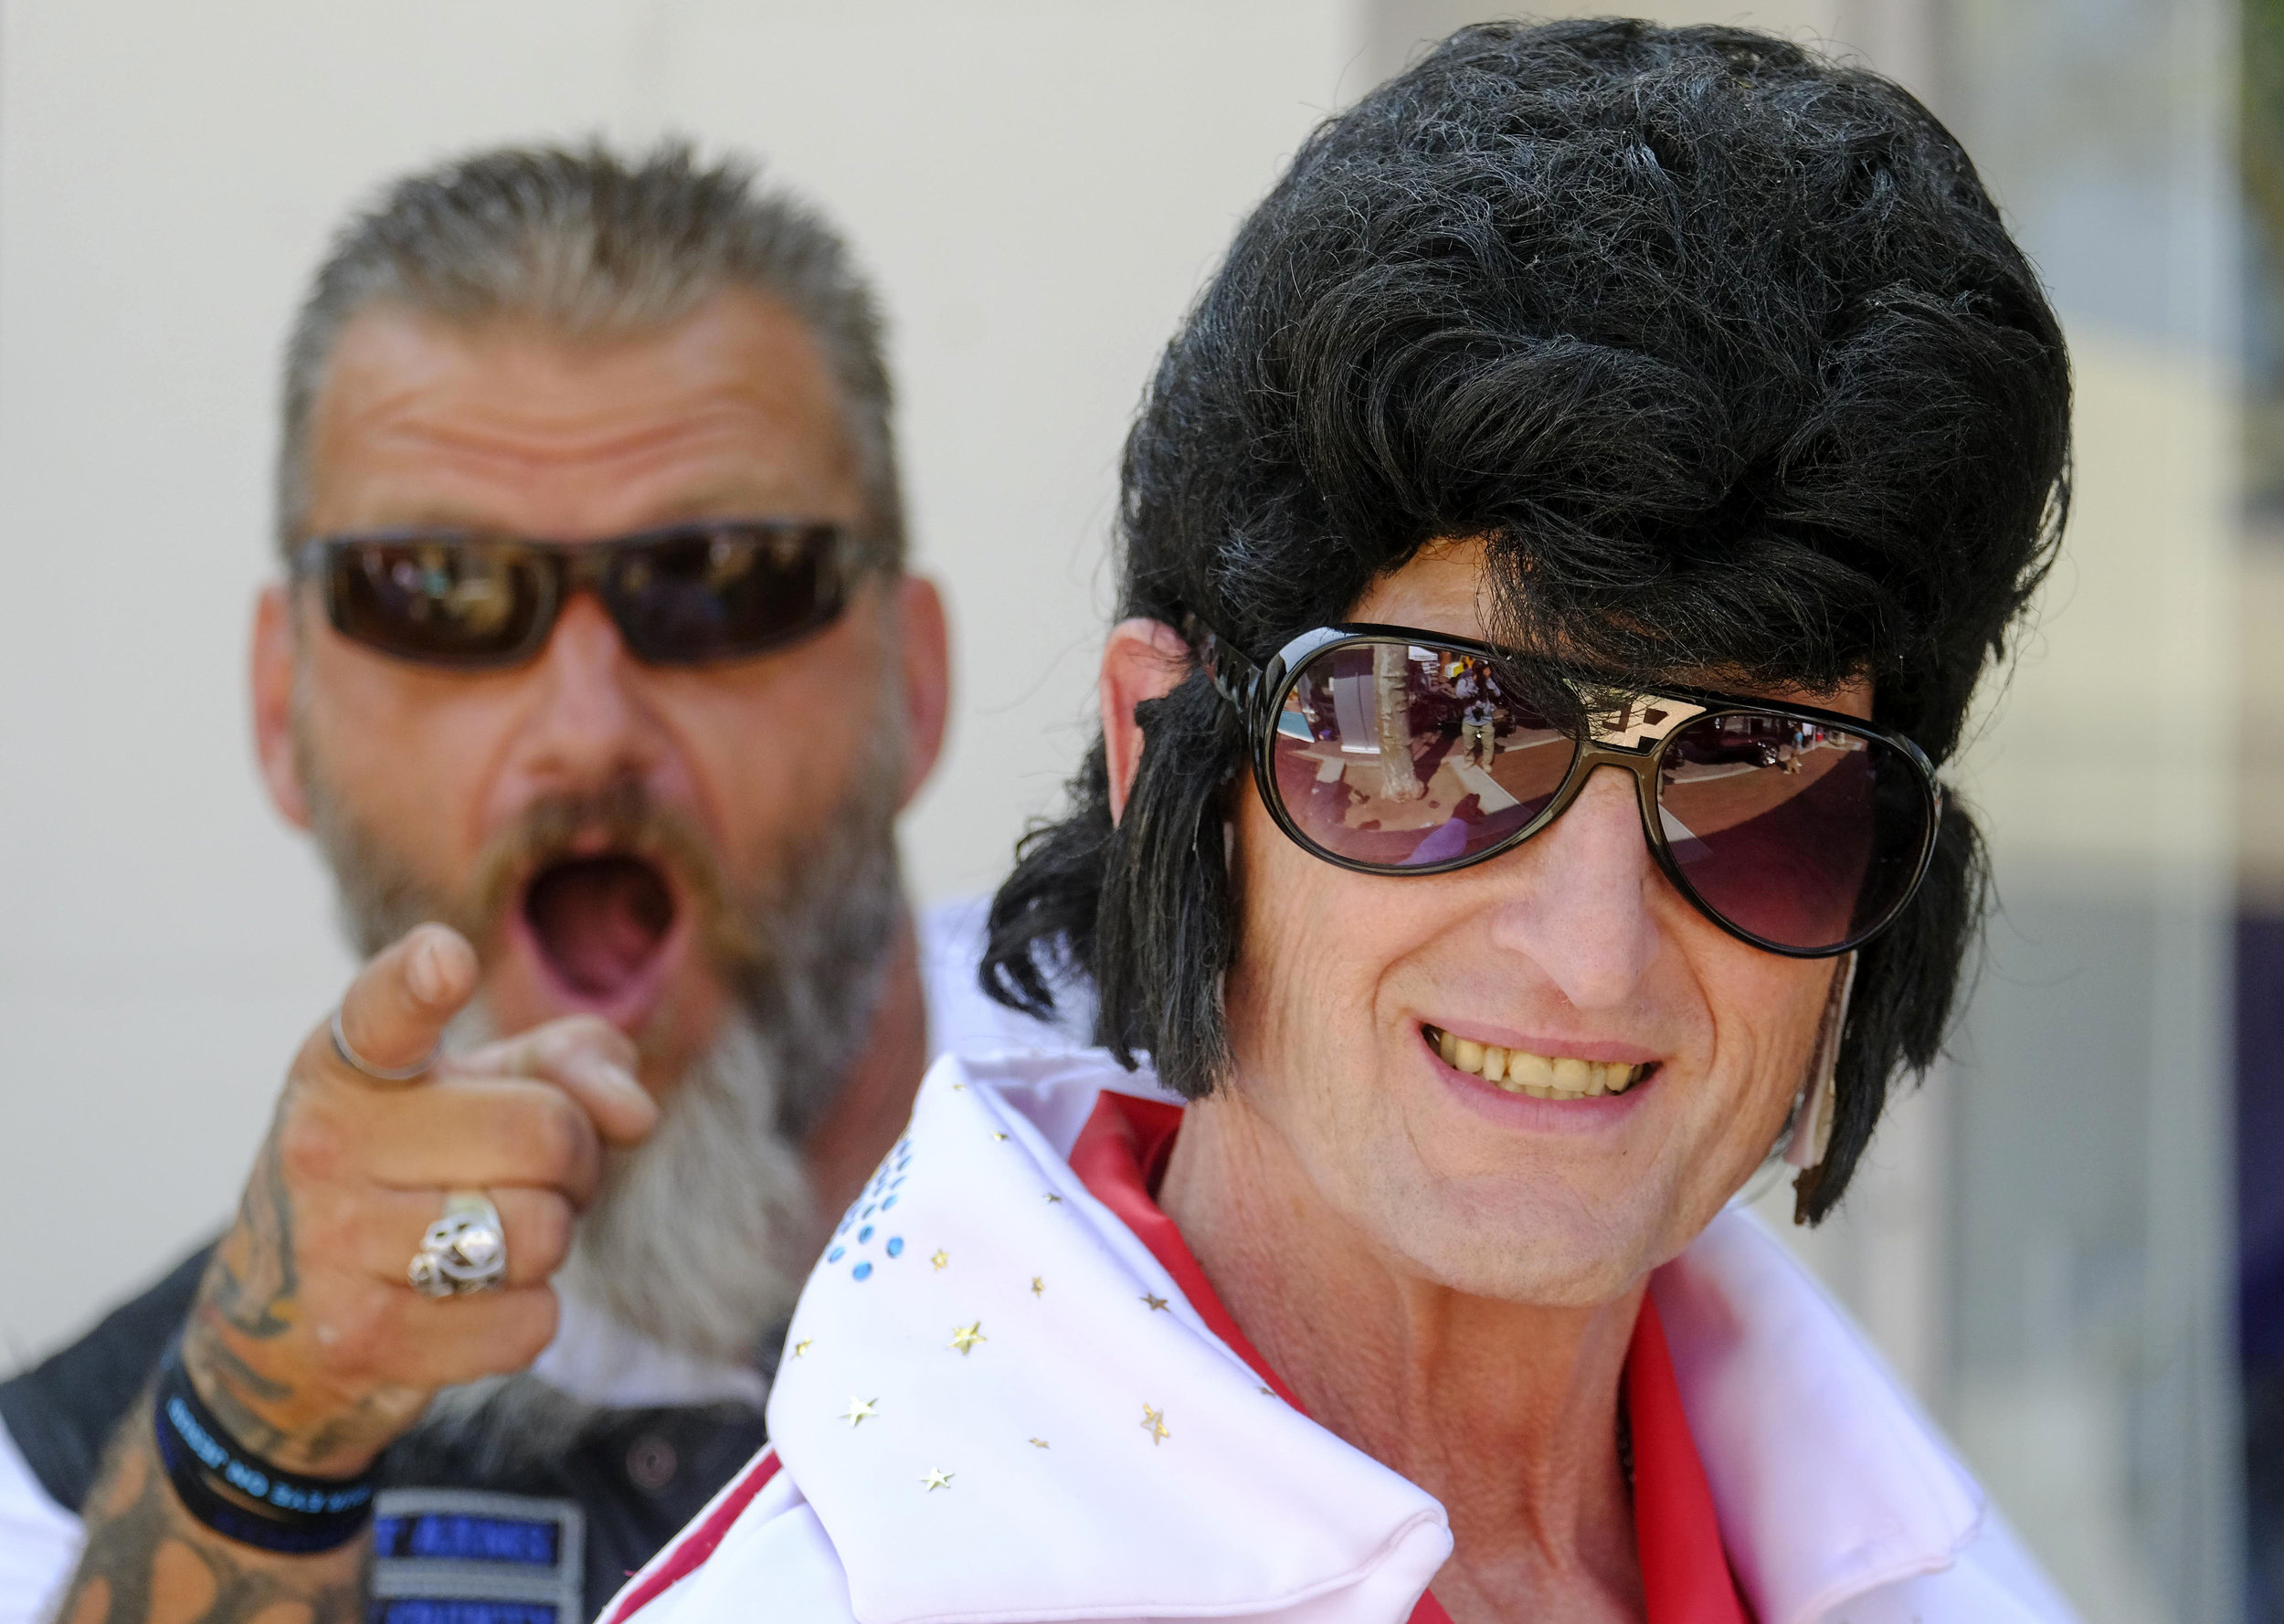 A fan dressed as Elvis Presley poses for pictures in the 19th annual Elvis Festival to tribute the King of Rock N' Roll on Sunday August 26, 2018 in Garden Grove, California, the United States.